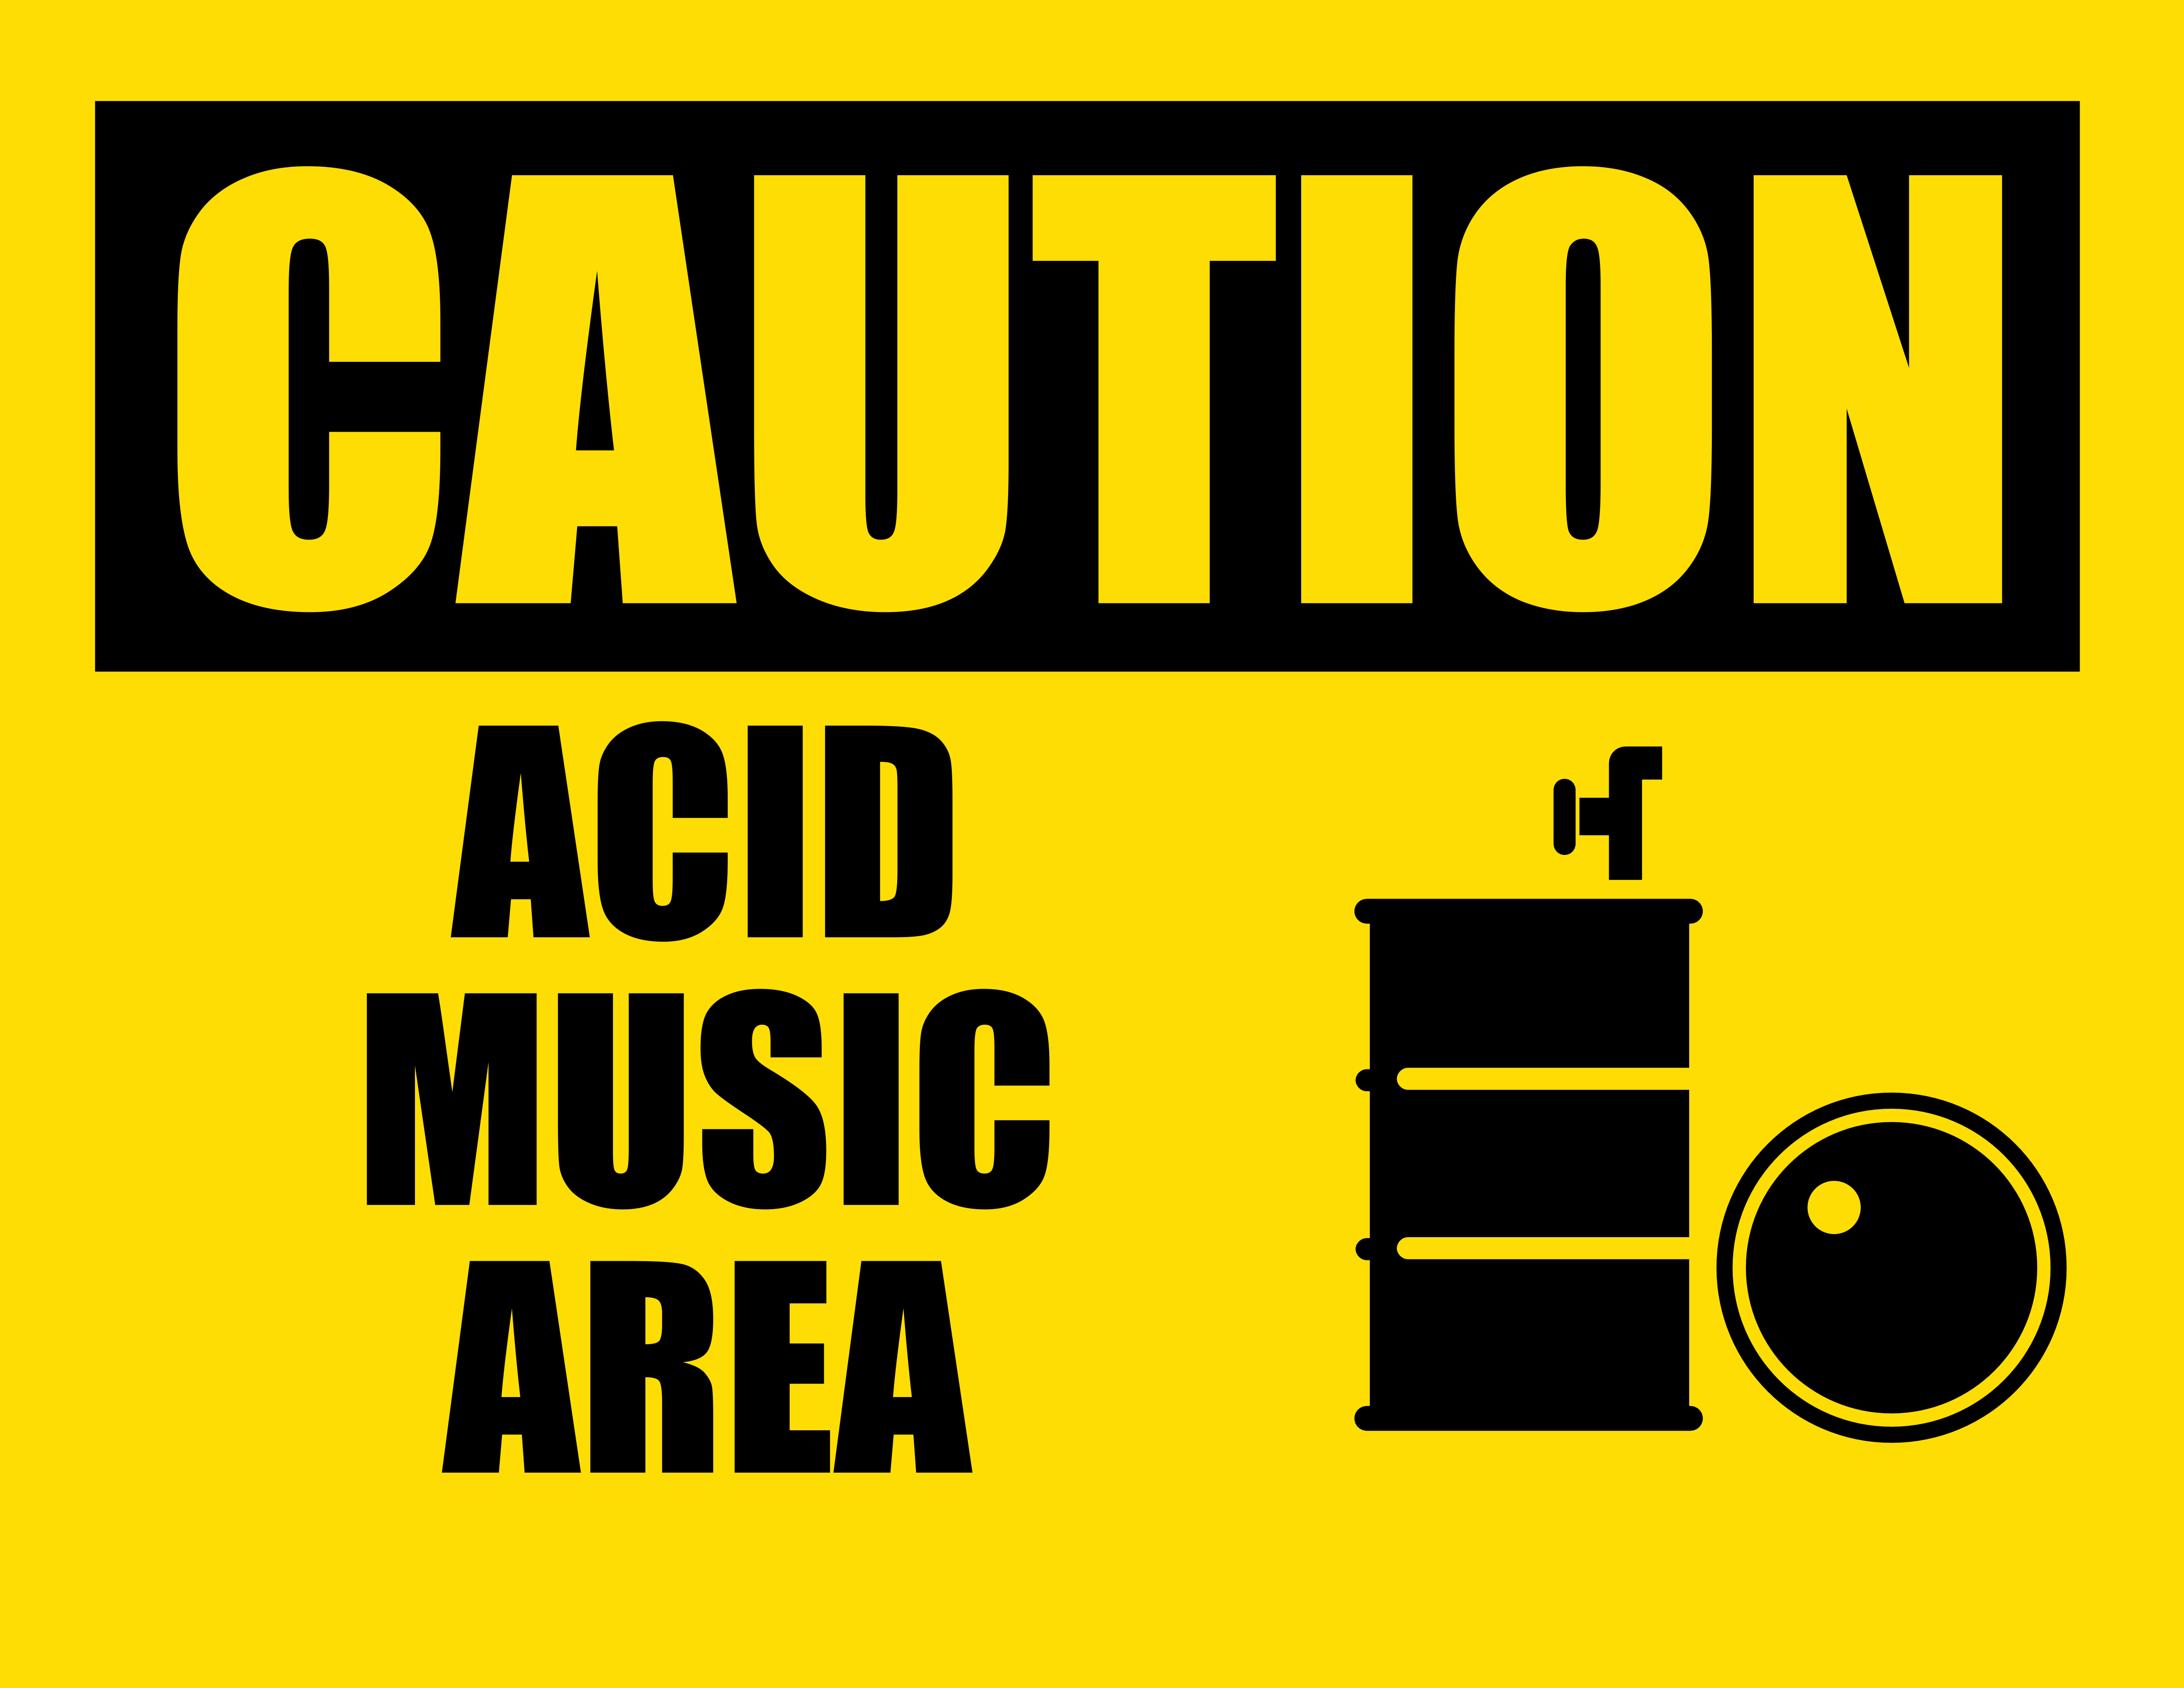 Caution acid music area by hakitocz on deviantart for Acid song 80s